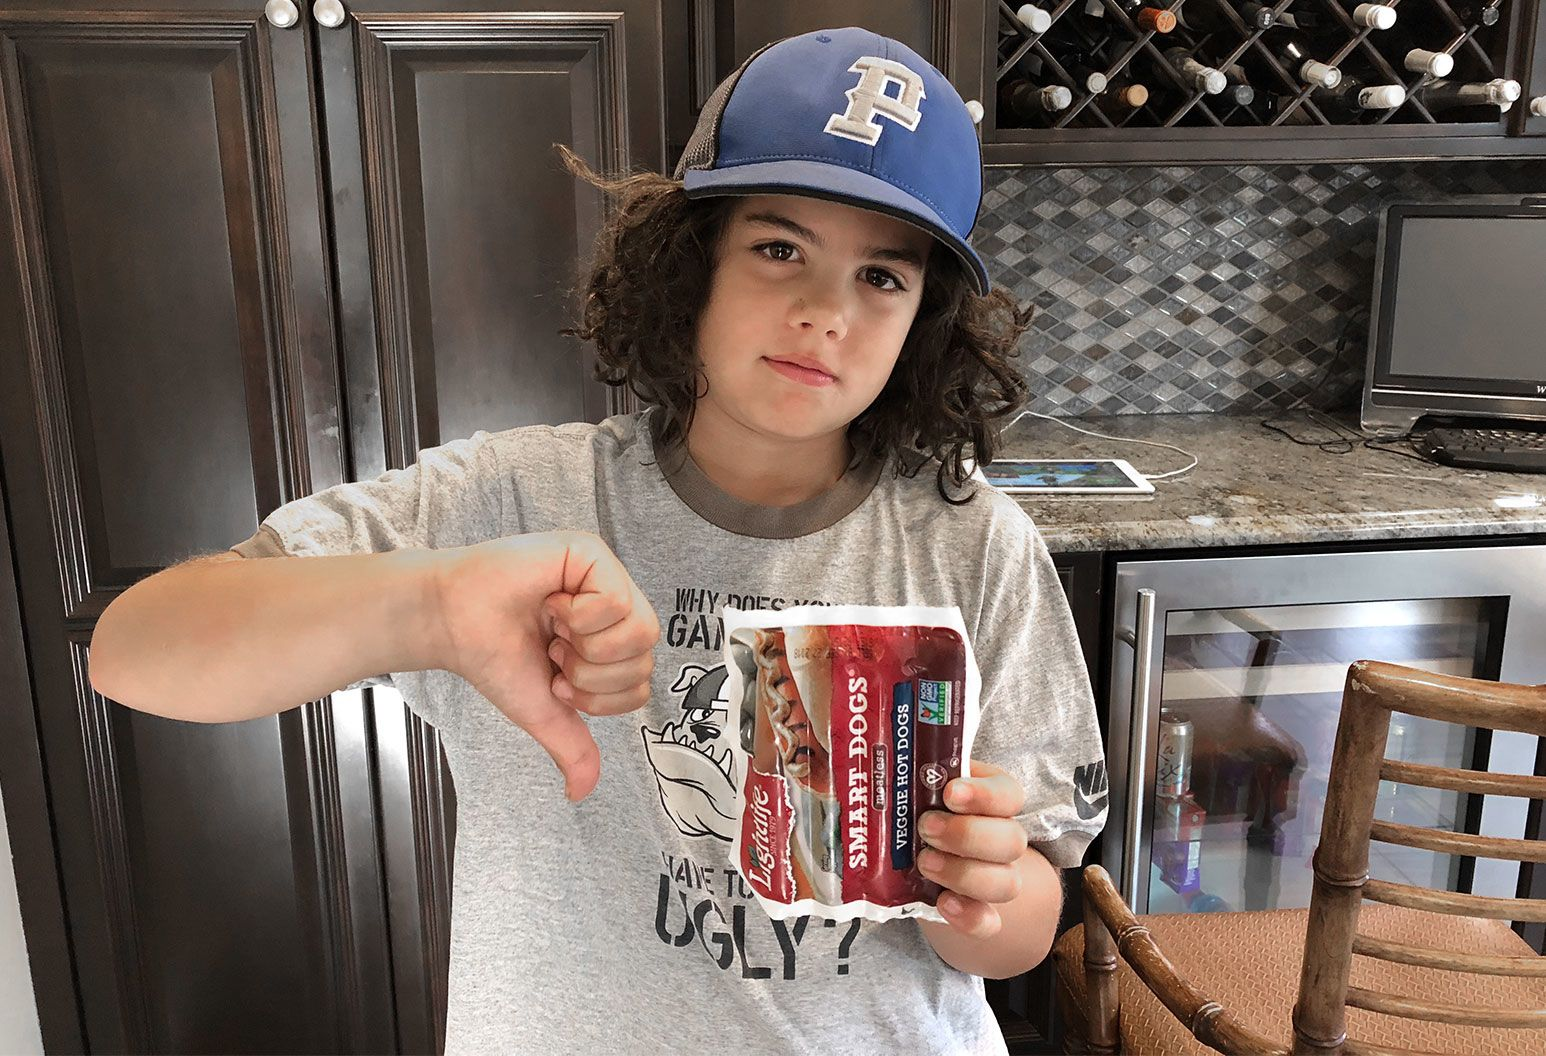 A teen boy with long black hair and a cap stands in a kitchen giving a thumbs down with one hand and an image of a hot dog on the other.